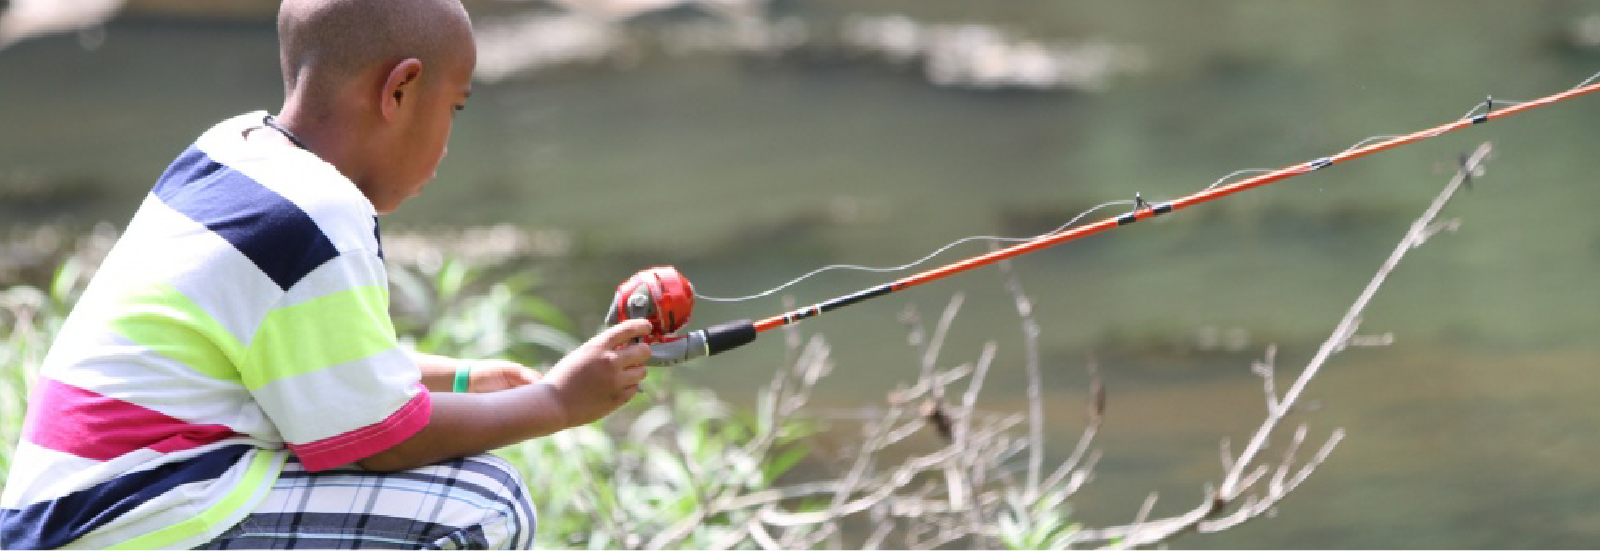 Things to Do Near Fort Campbell - Fishing & Hunting